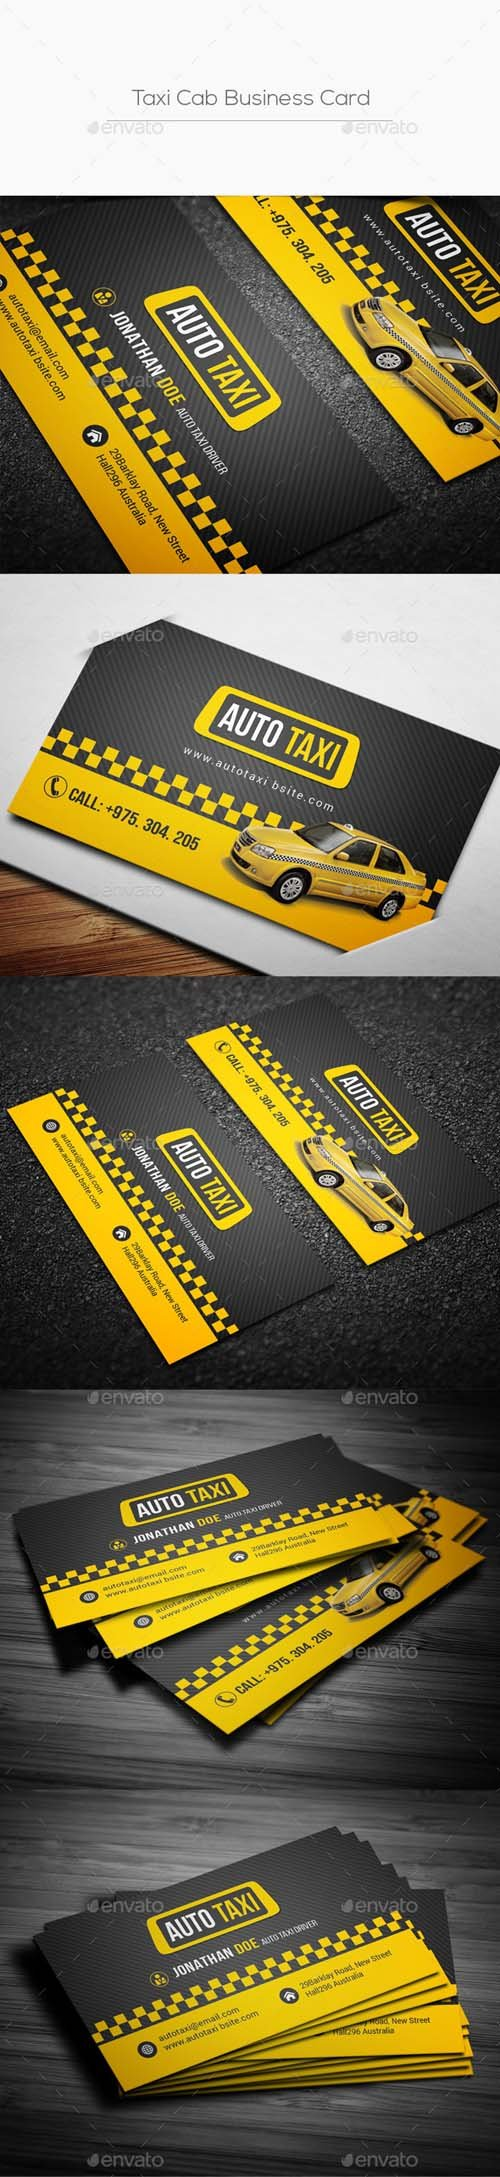 Taxi Cab Business Card 20215185